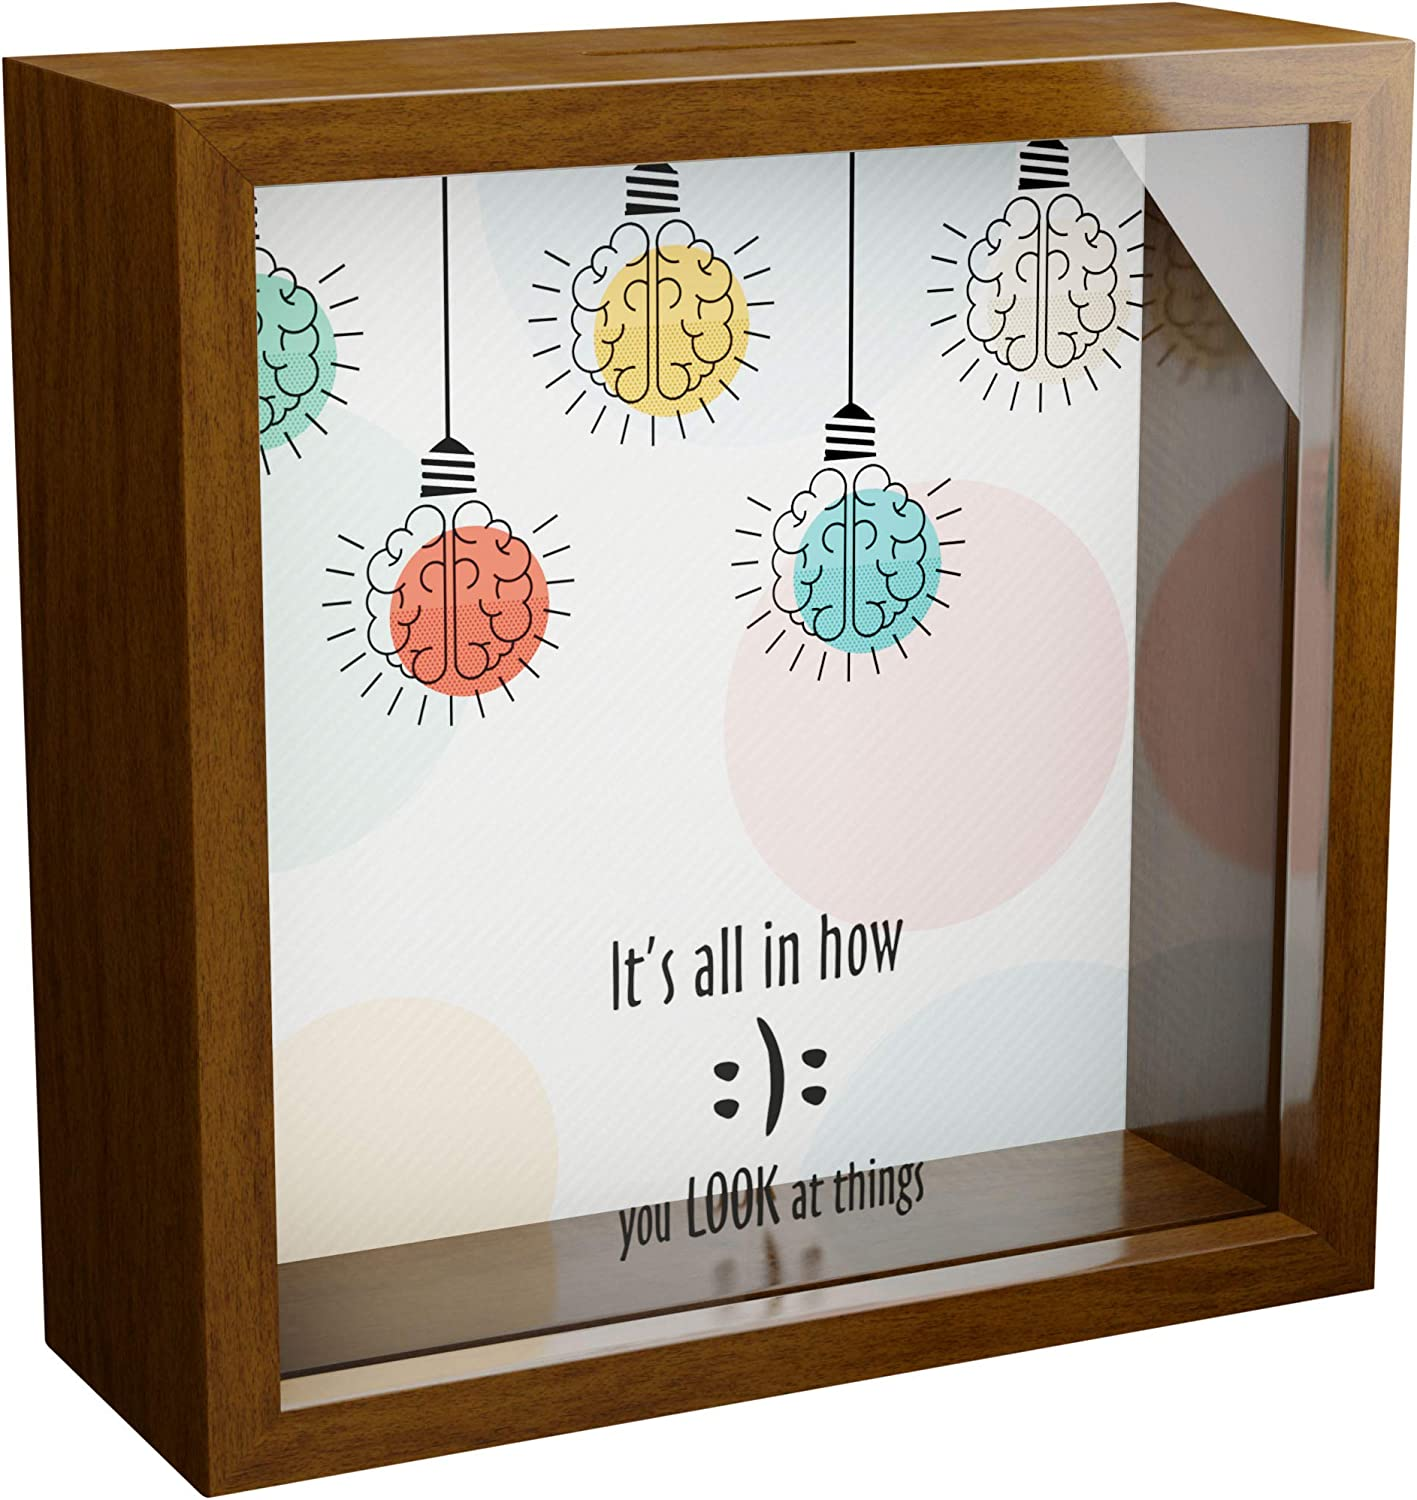 Psychology Gifts | 6x6x2 Memorabilia Shadow Box with Glass Front | Wall Decor Keepsake for Home and Office | Wooden Décor for Psychologist or Therapist | Great Gift to Collect Special Items